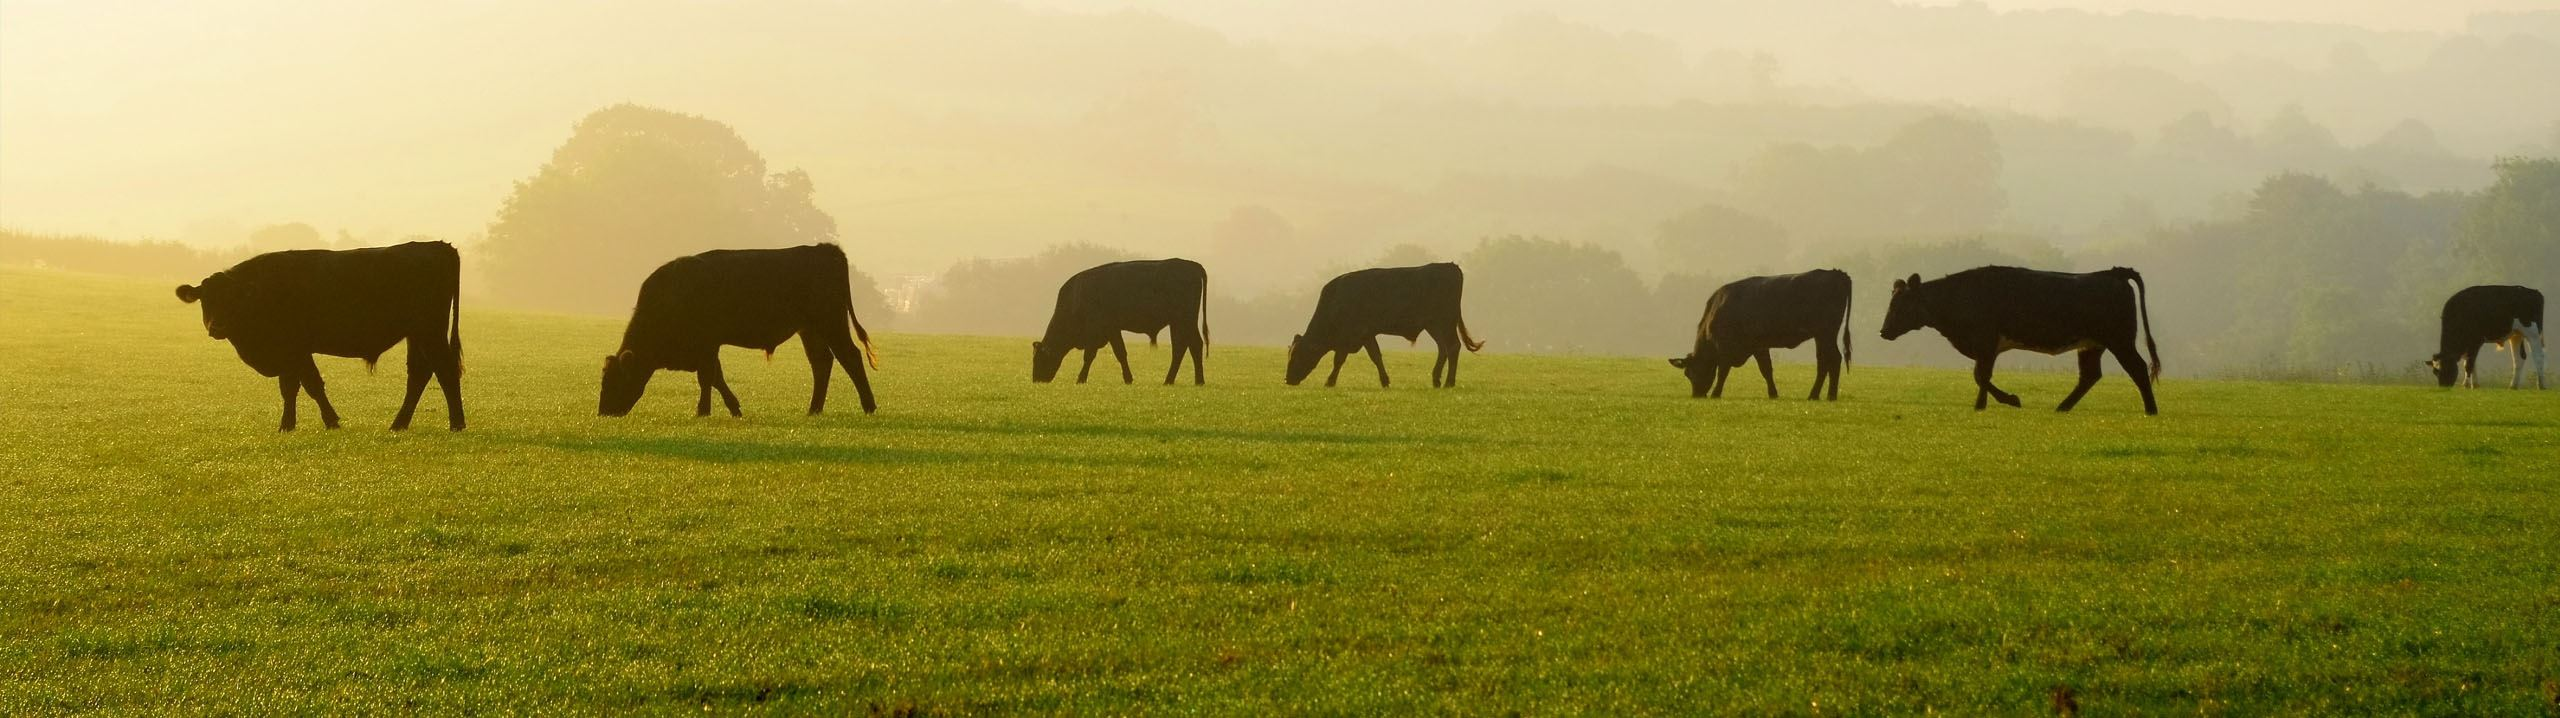 A Field of Cows Eating - Business Banking Promo